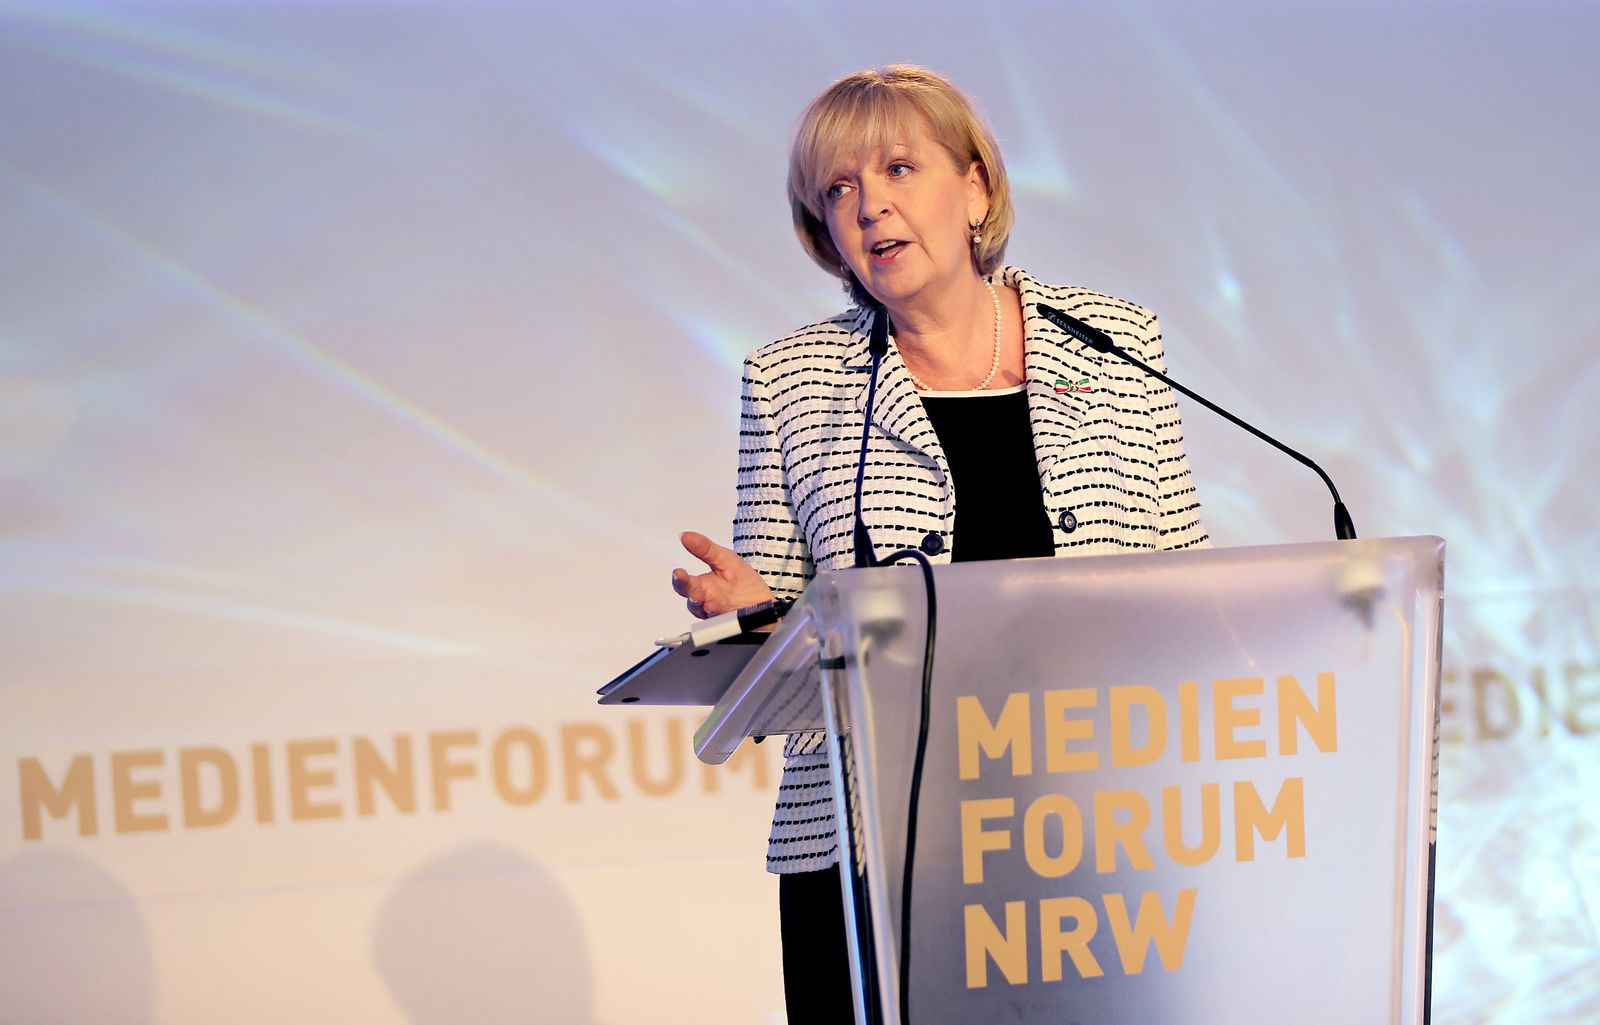 Hannelore Kraft/ Medienforum